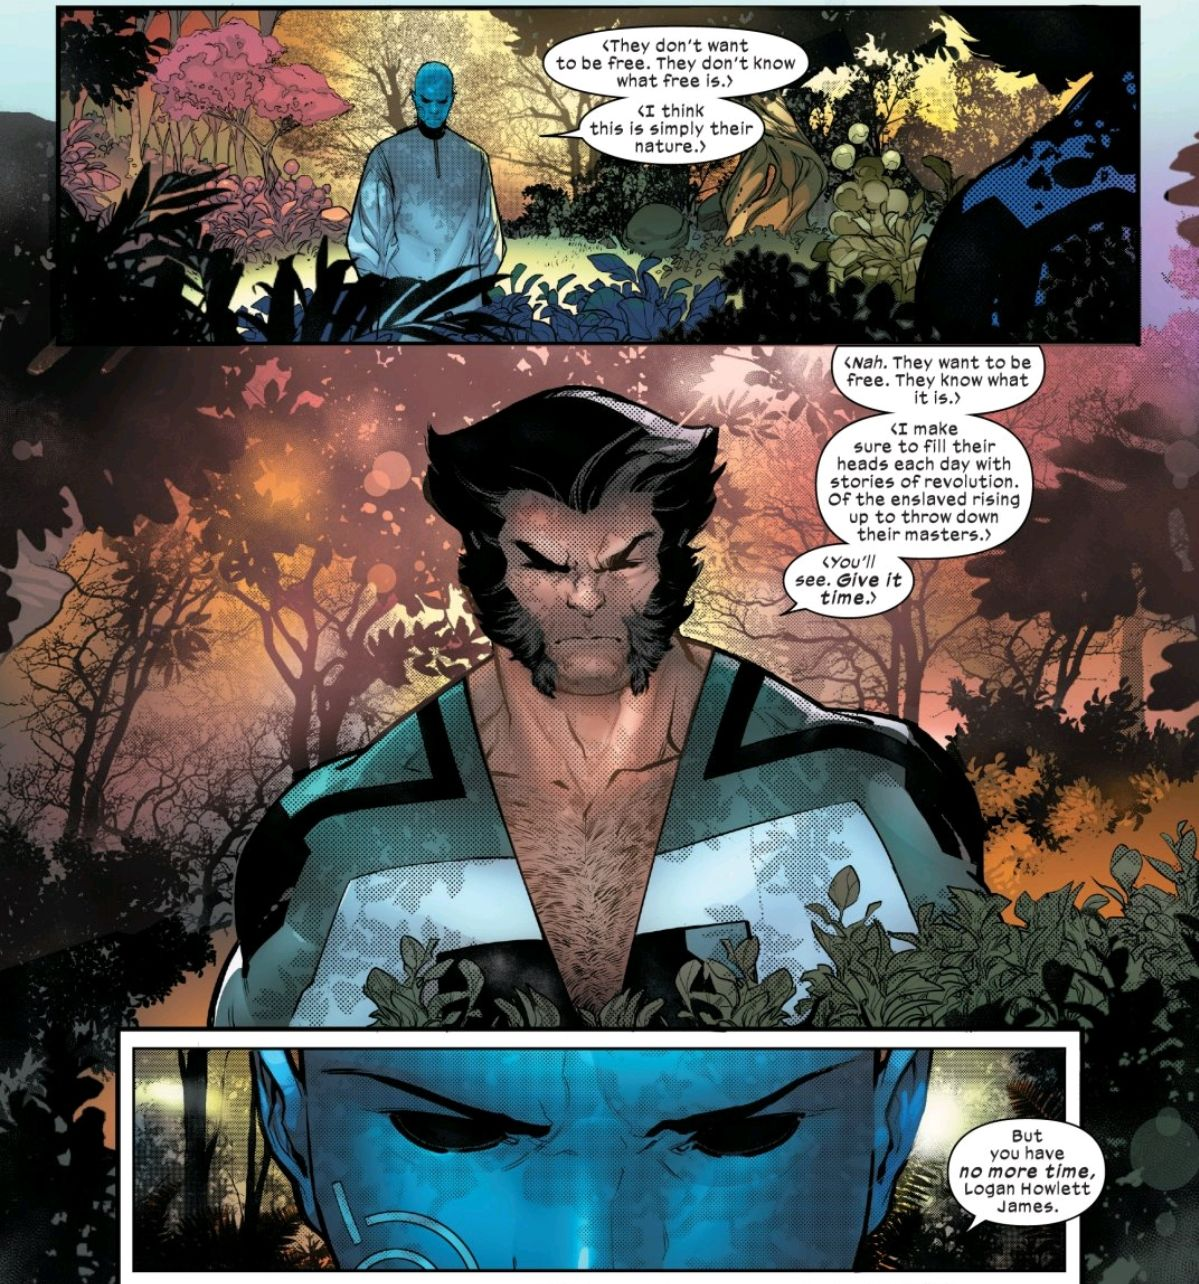 Wolverine/Logan and the Librarian talk in the garden/zoo in Powers of X #6, Marvel Comics (2019).